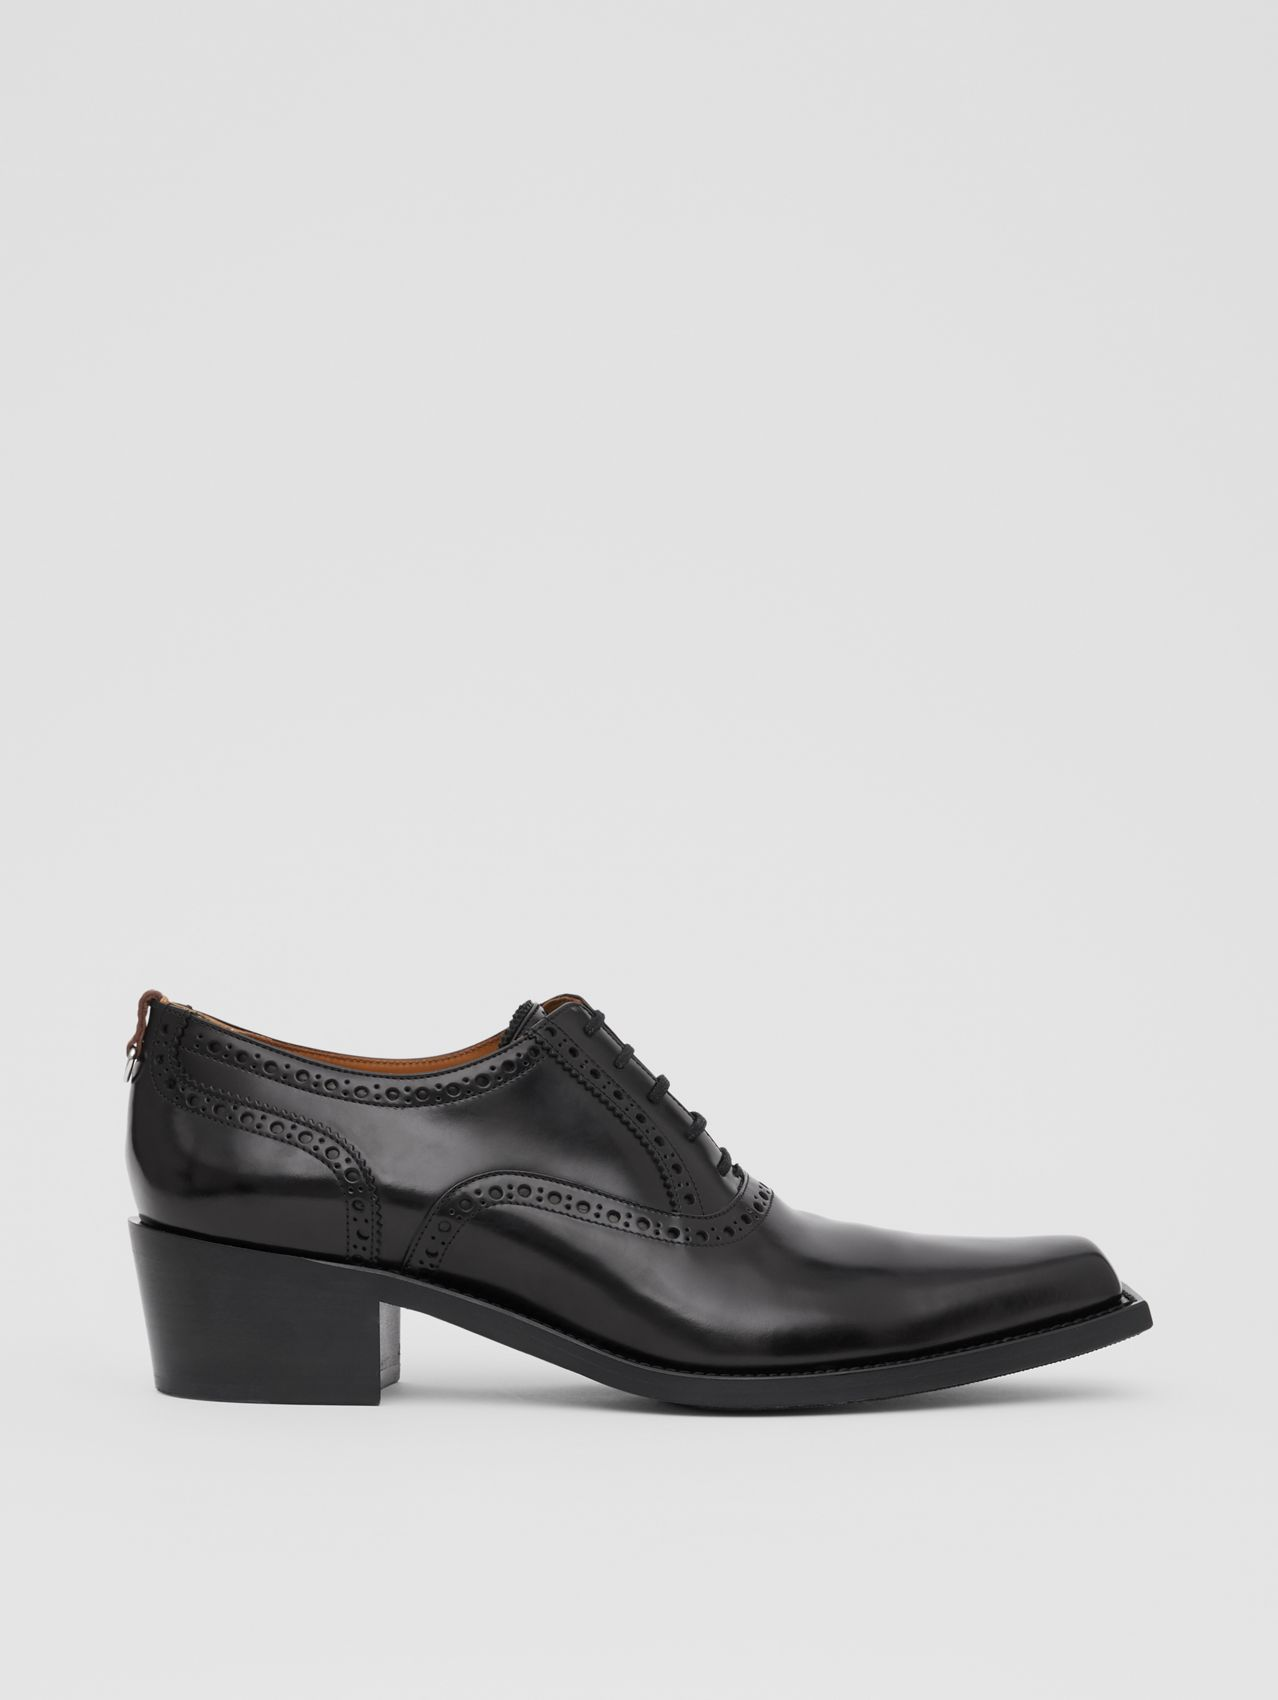 Brogue Oxford in pelle con tacco e anello a D (Nero)